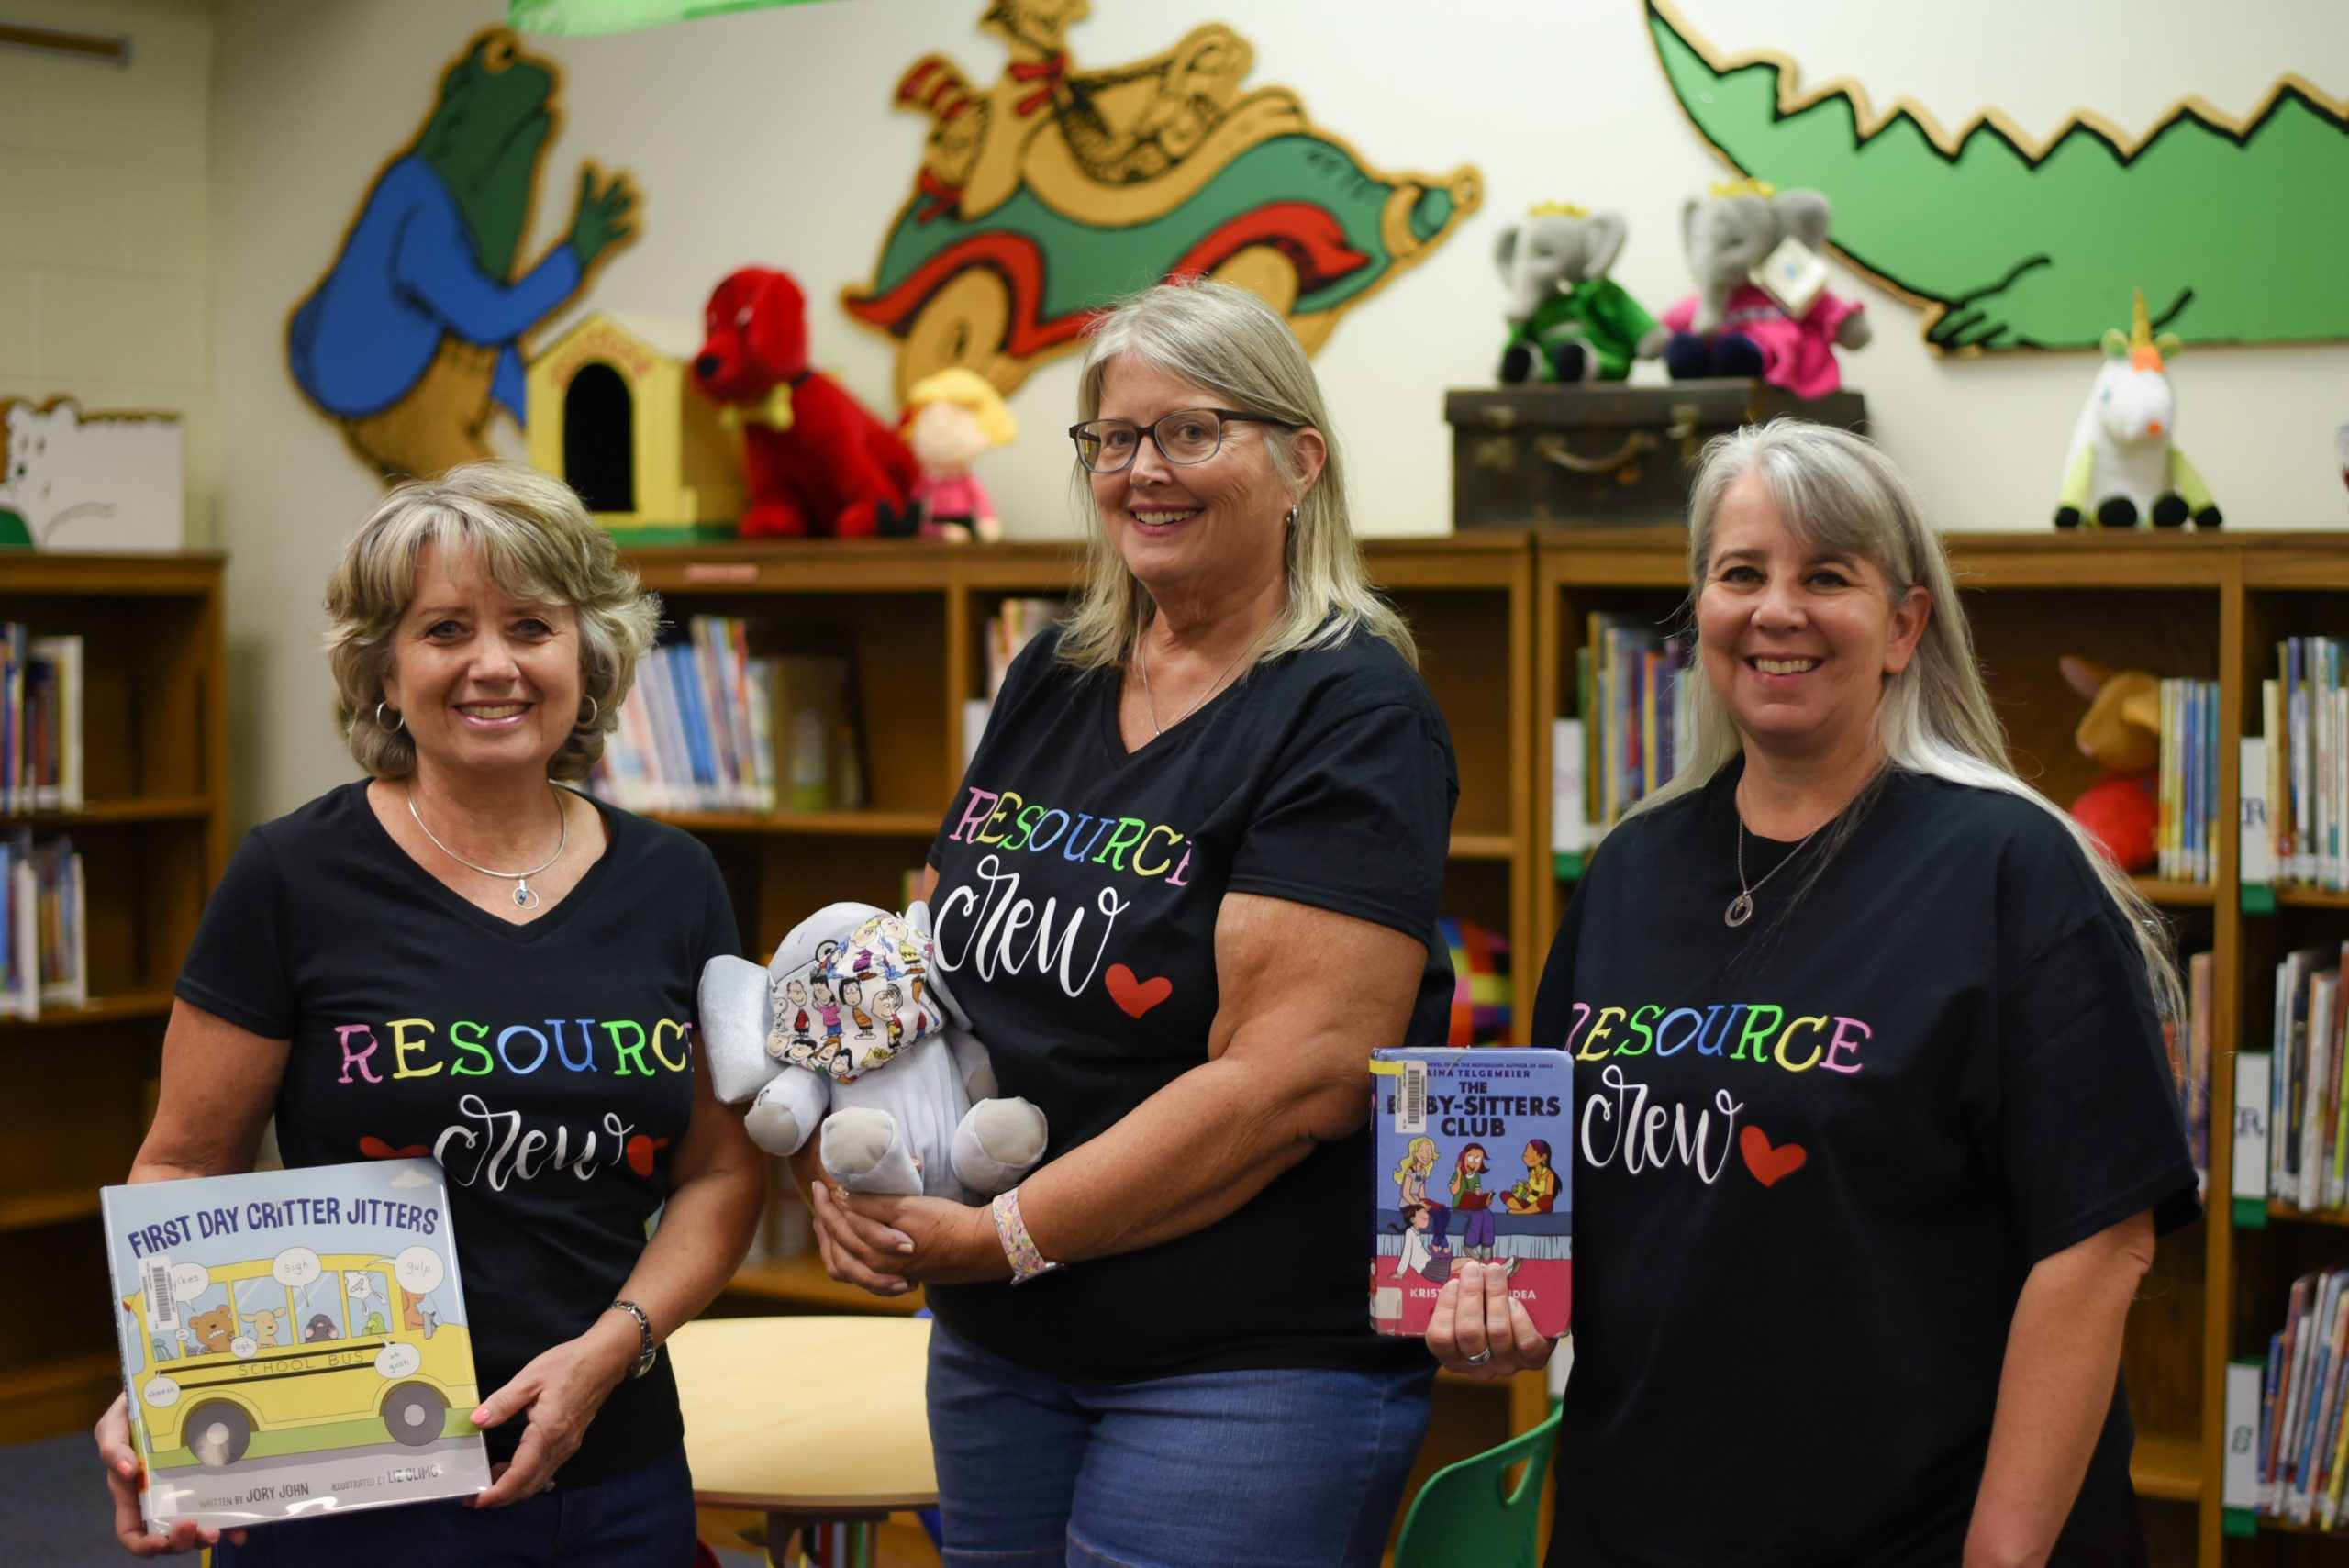 Three librarians pose holding books.